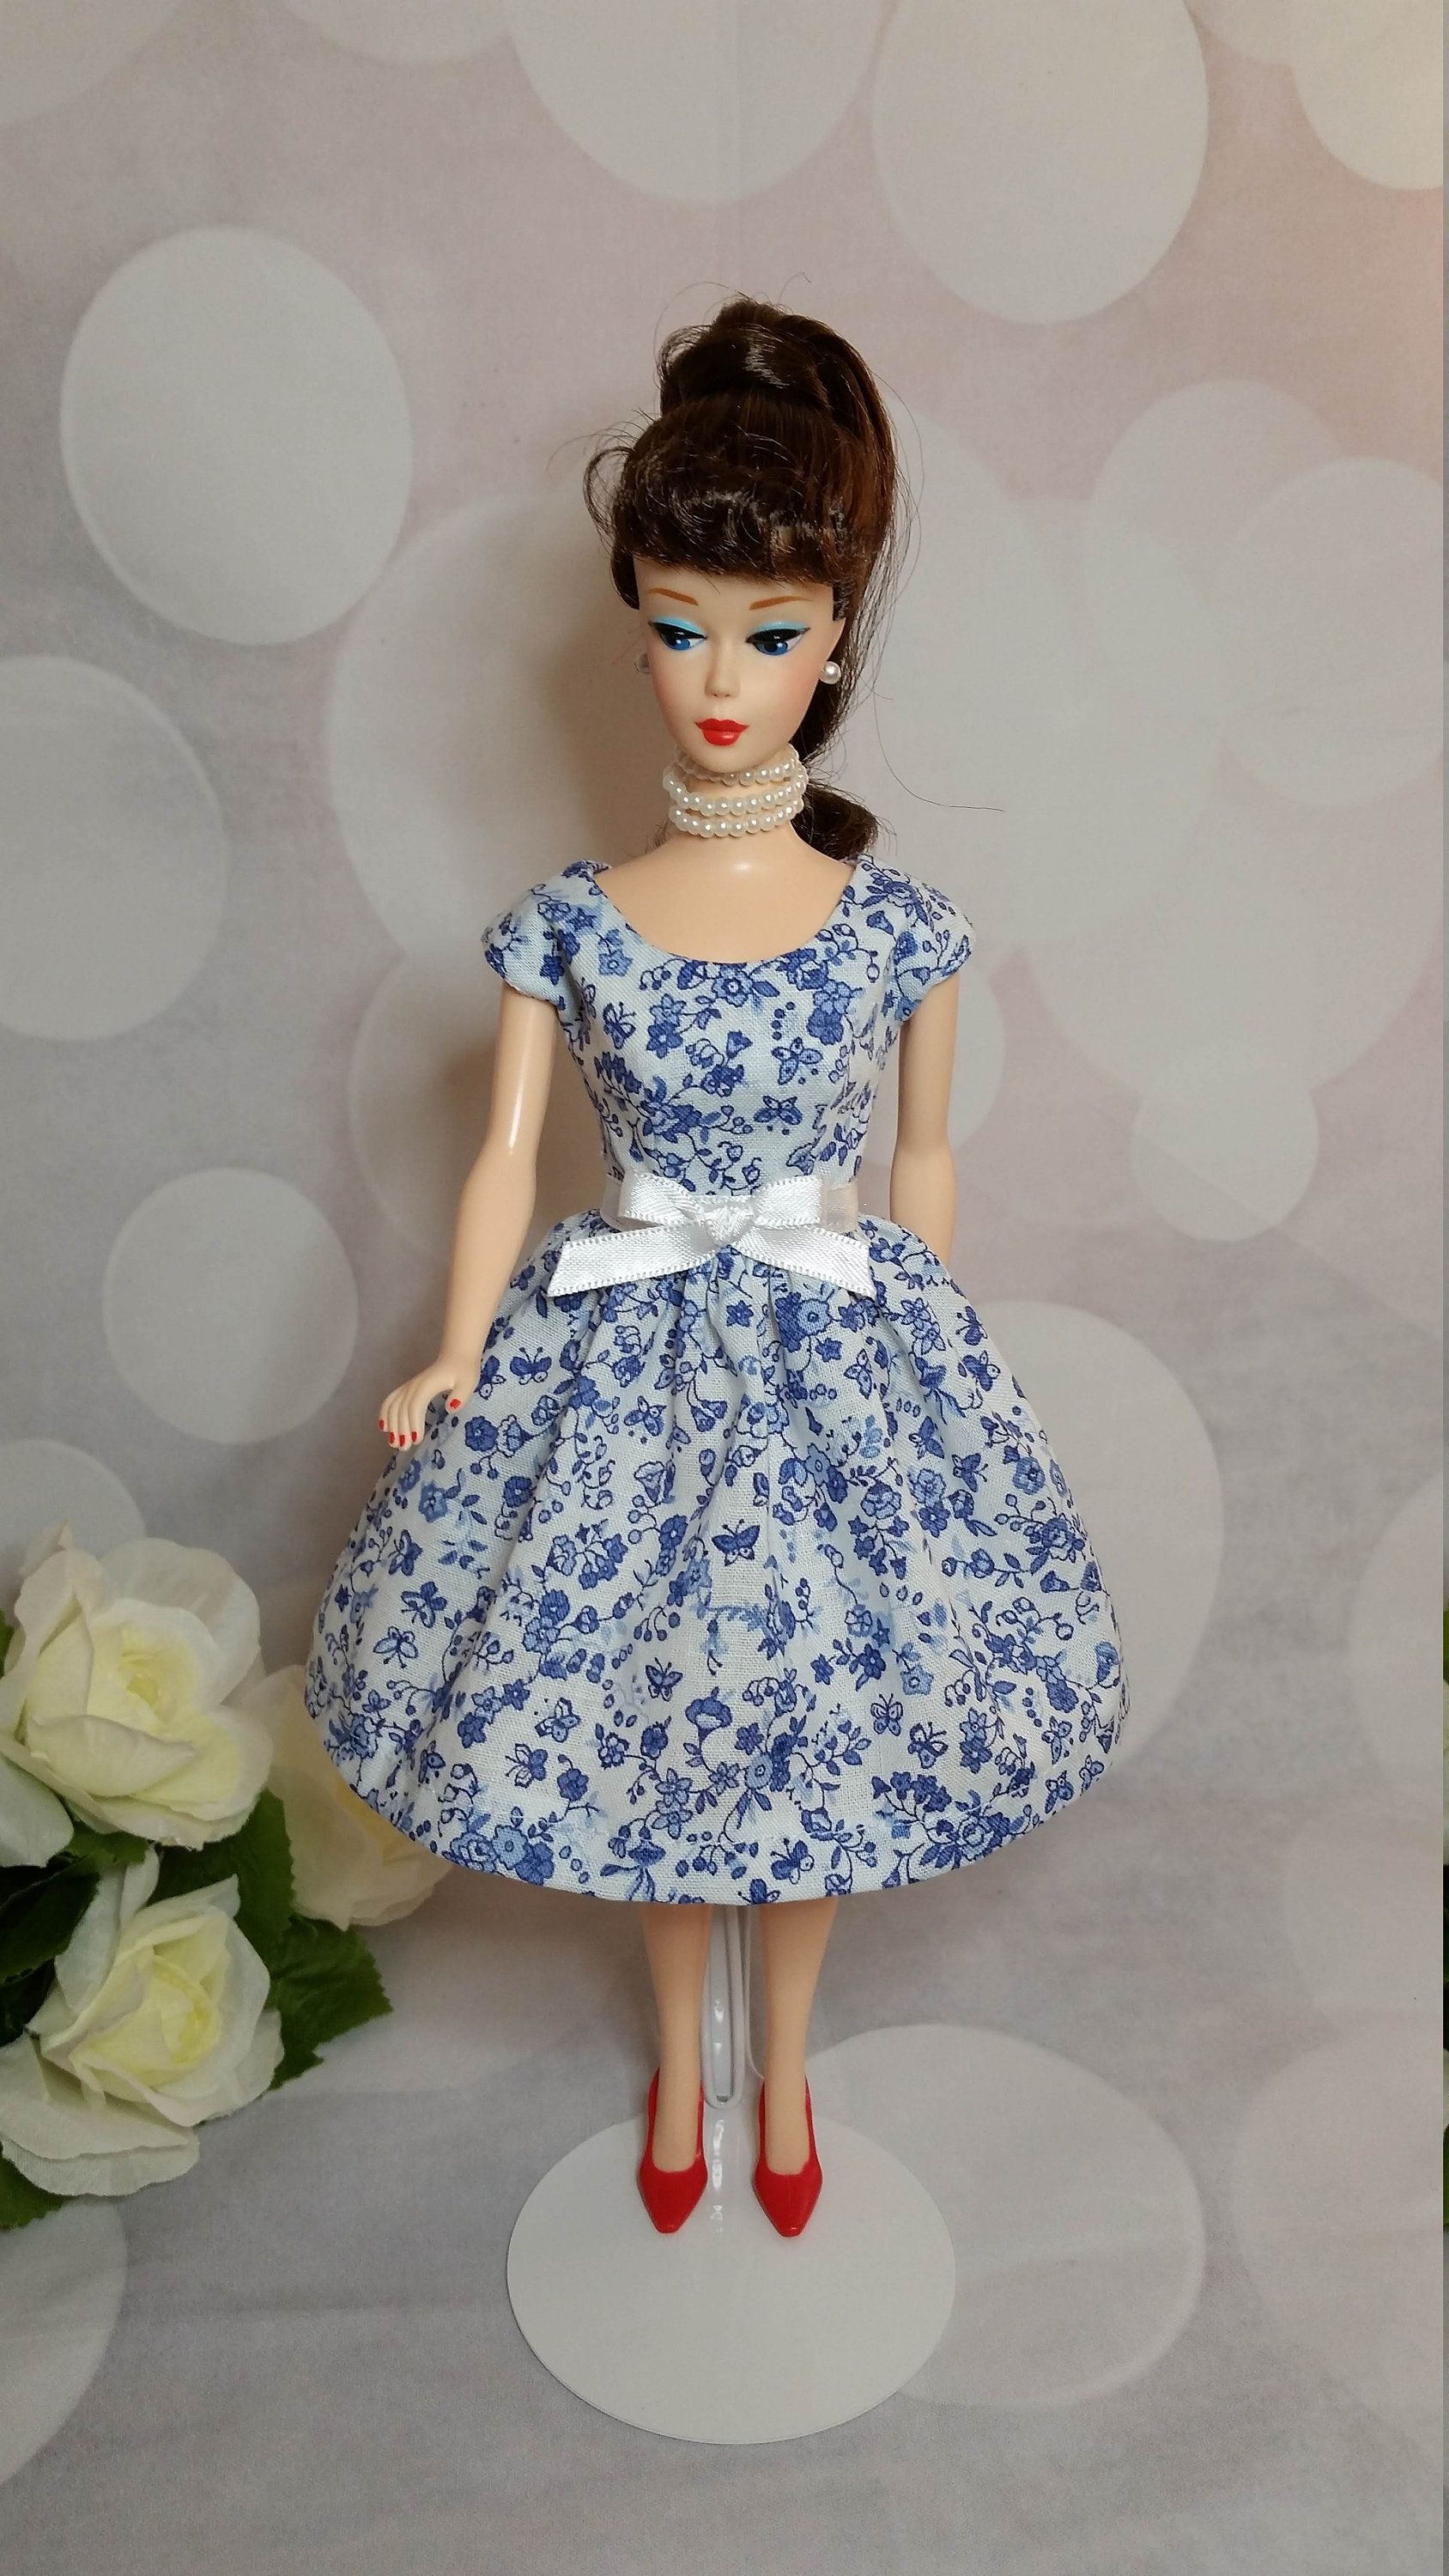 A Little Purple Dress with a Butterfly on the Botice Made to Fit Barbie Doll